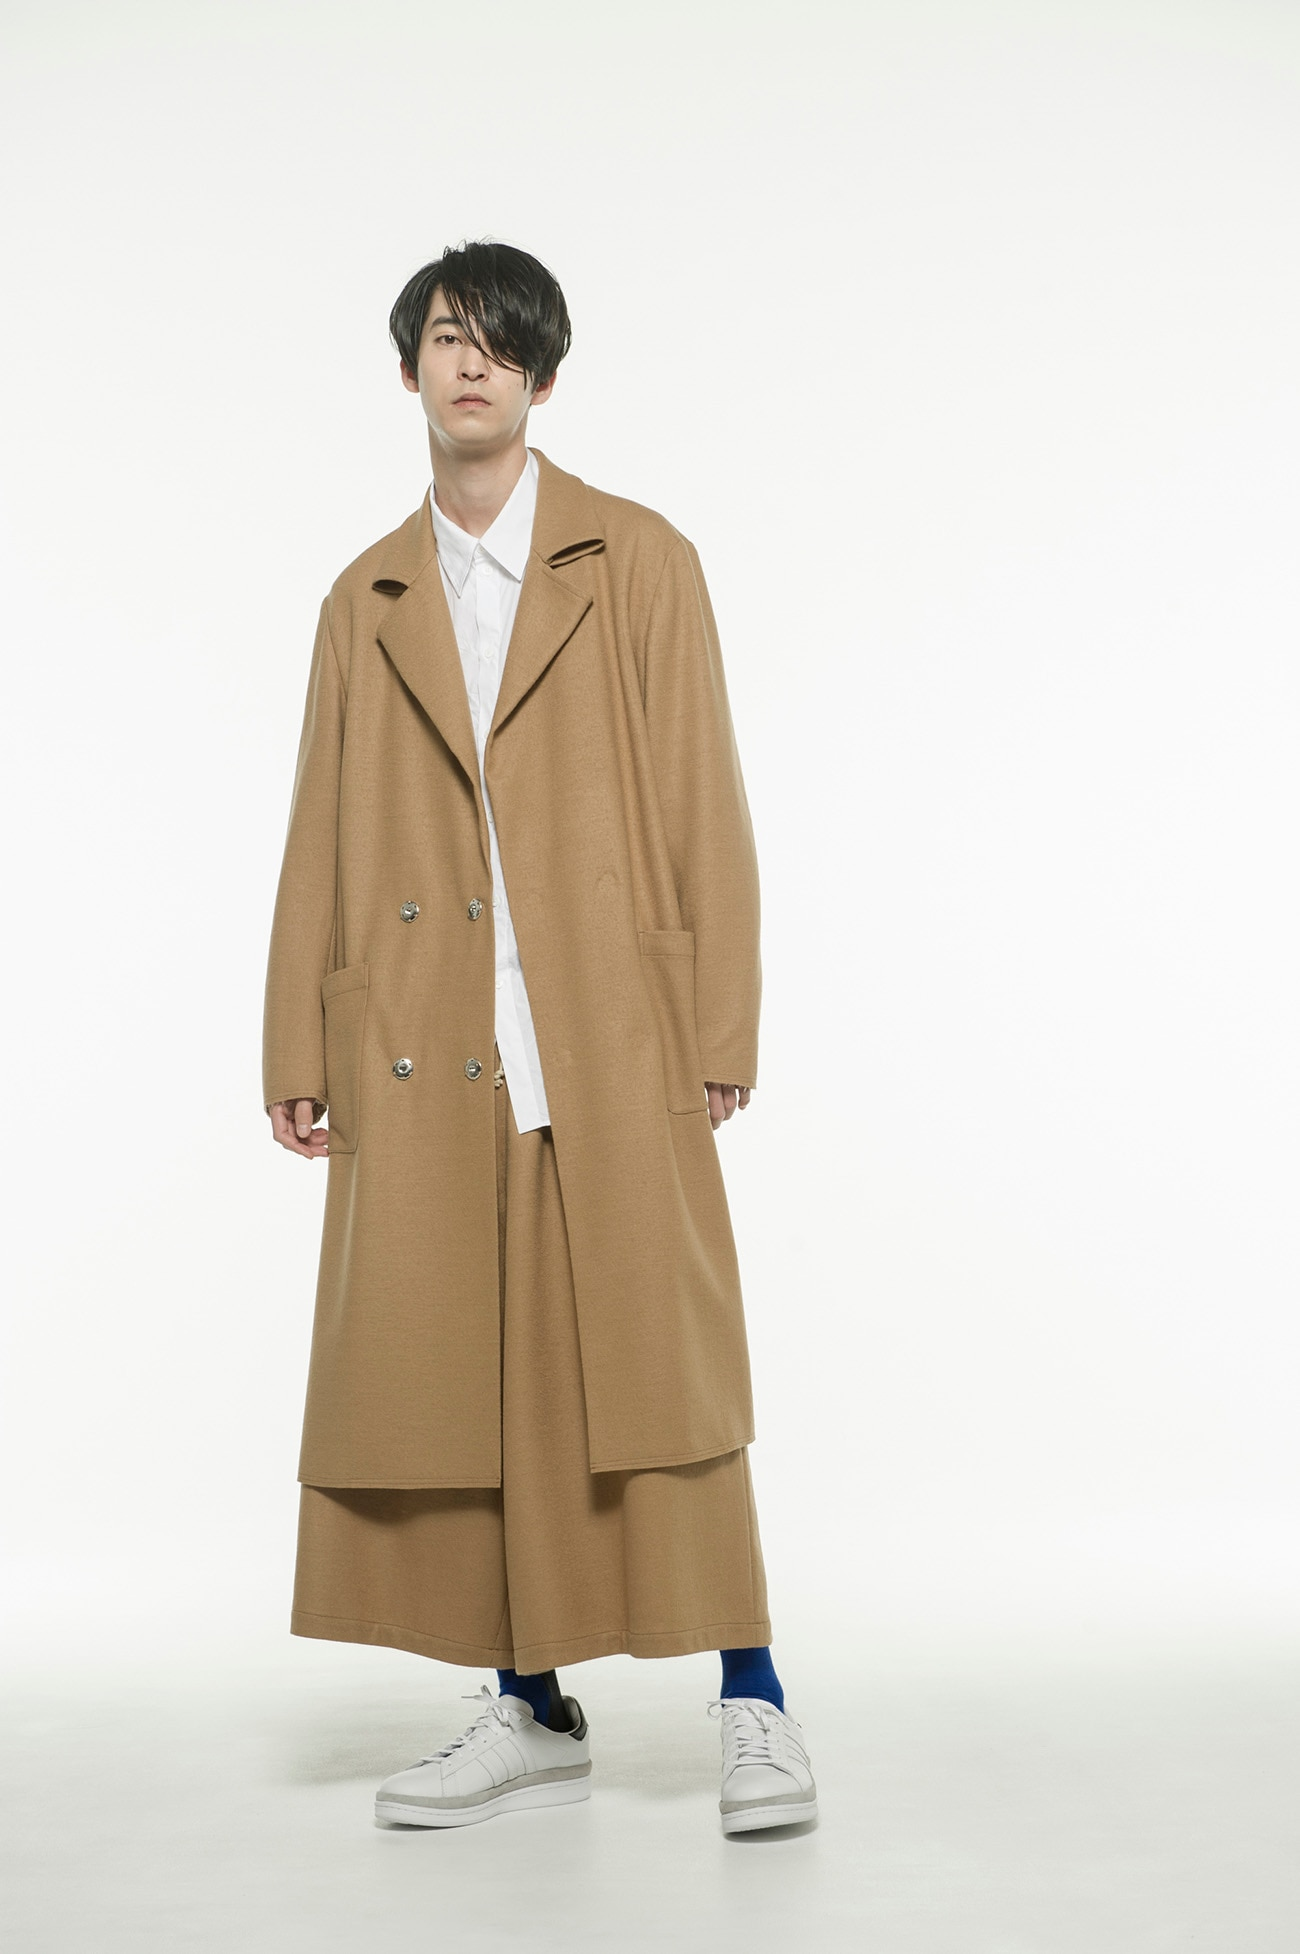 Compression Wool Semi Double Cuts Collar Tailored Coat